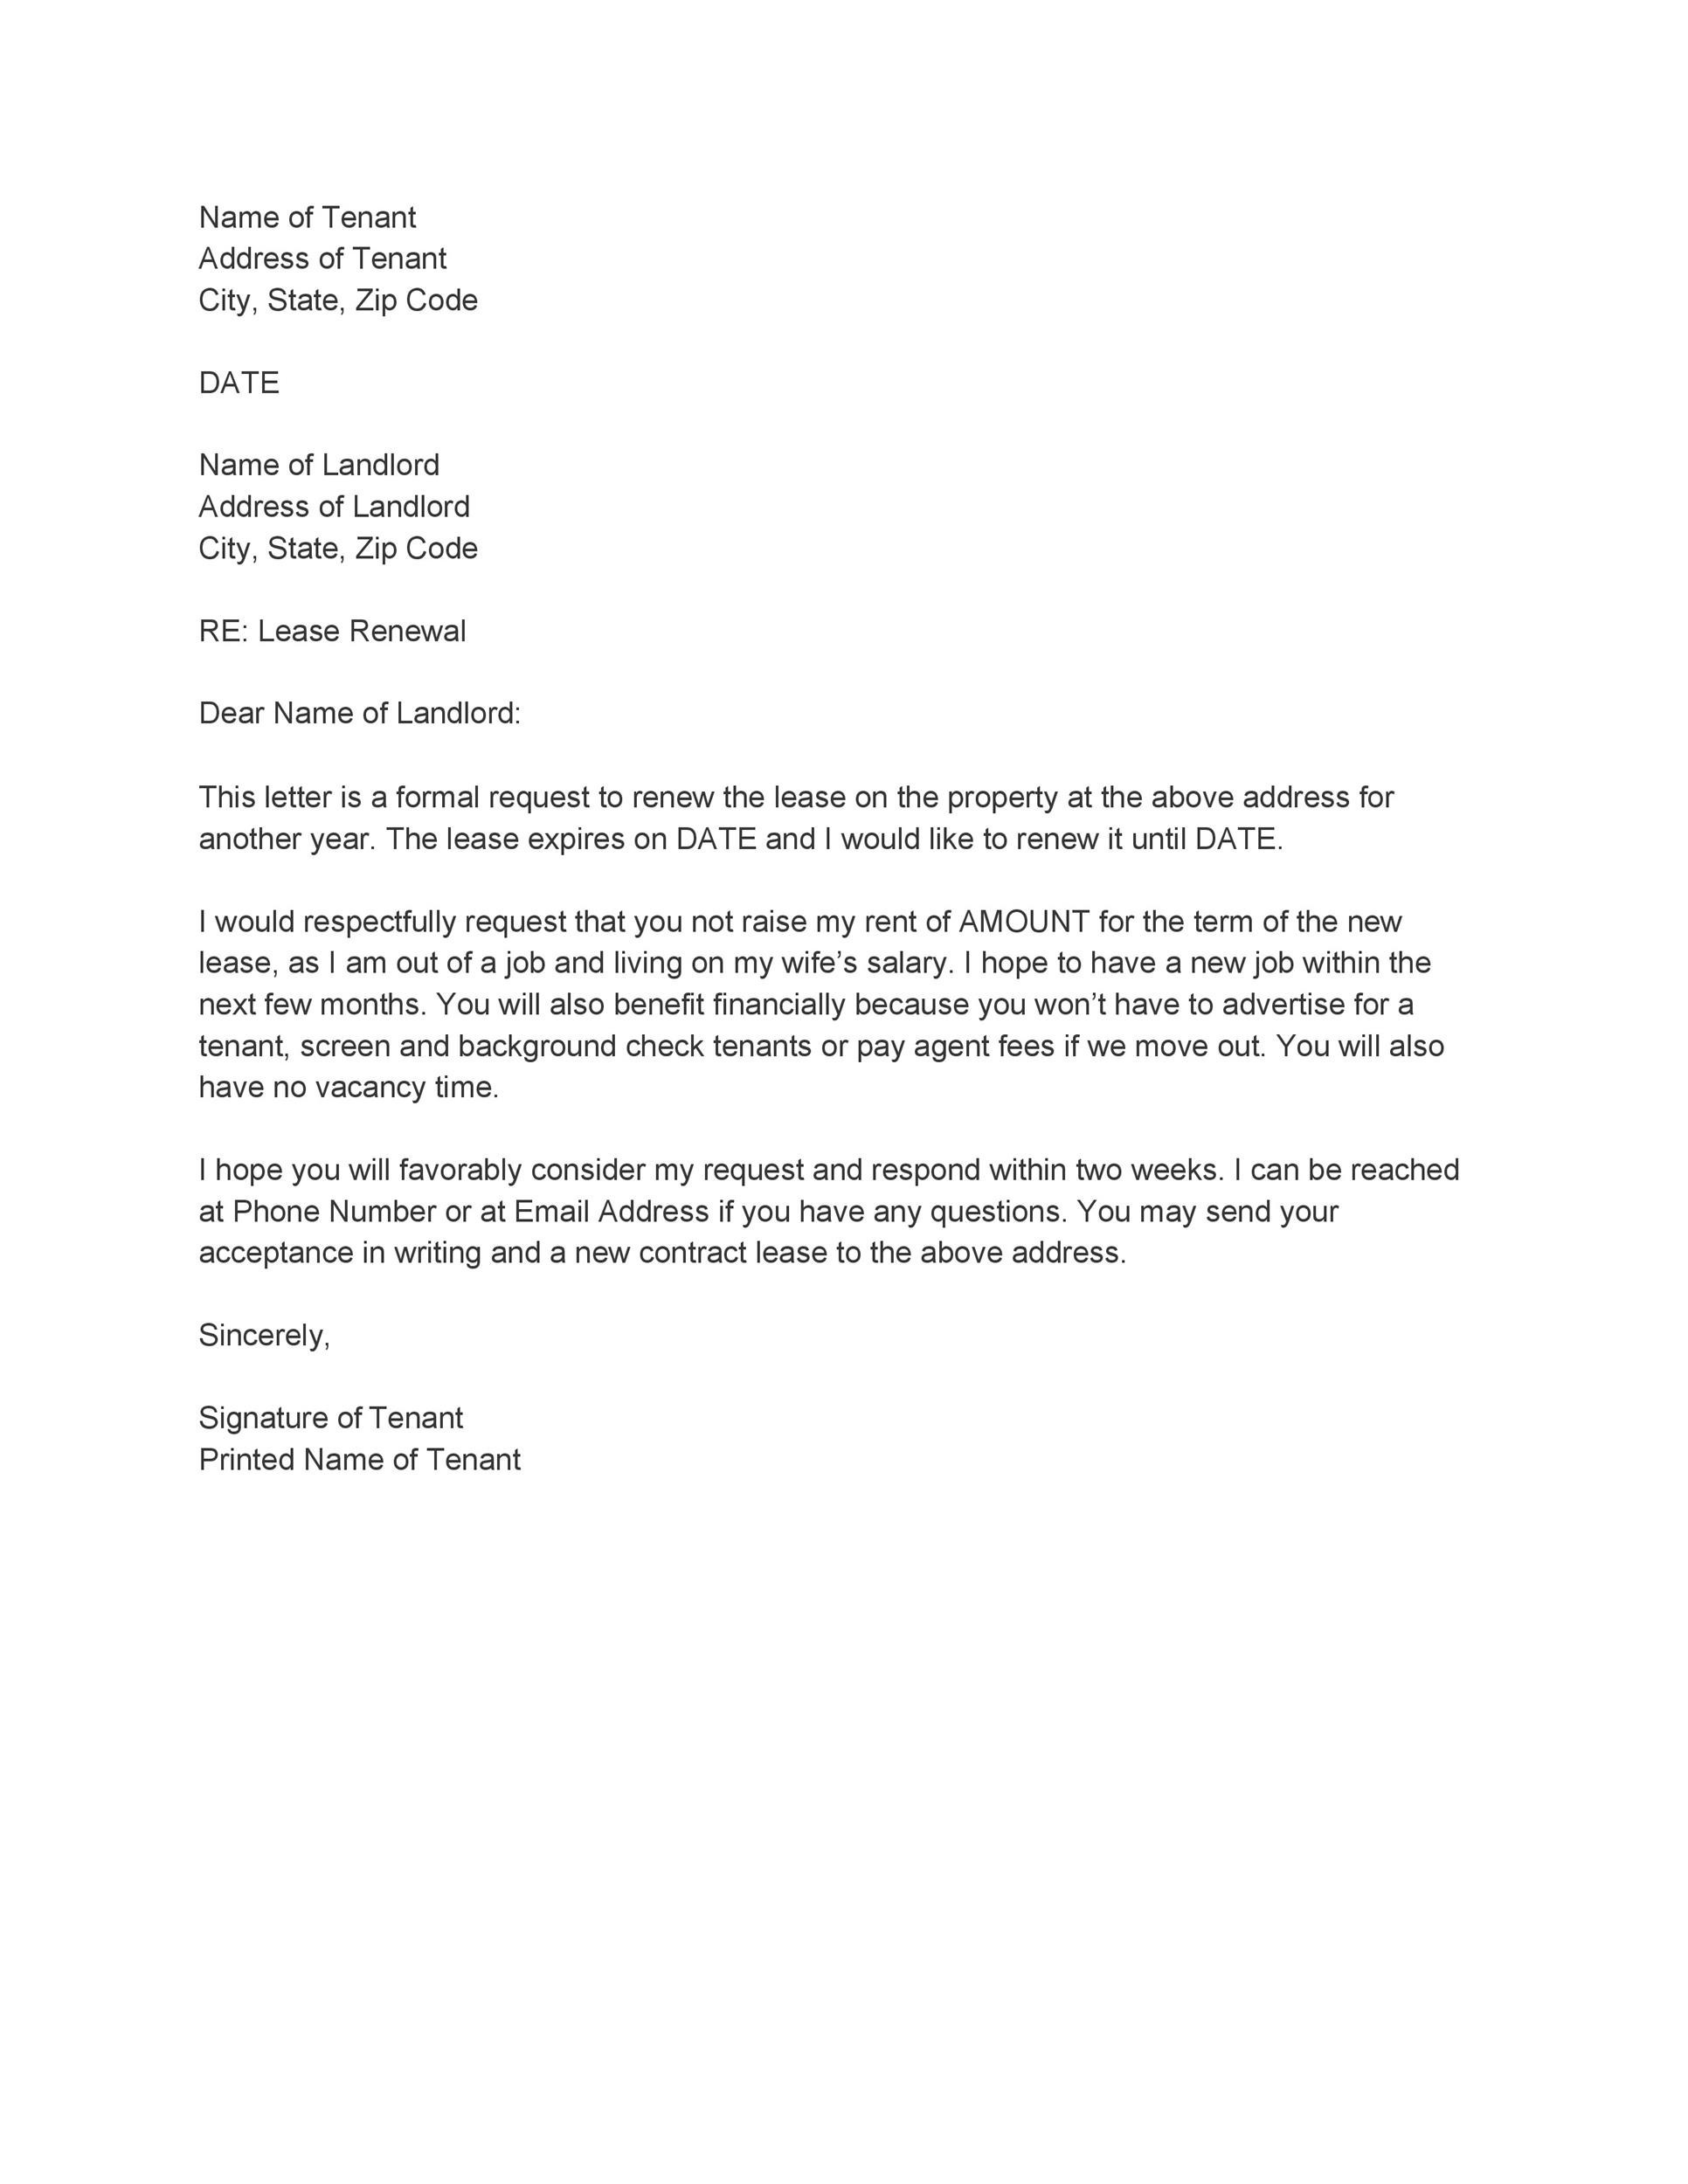 Sample Letter To Landlord Requesting Not To Increase Rent from templatelab.com